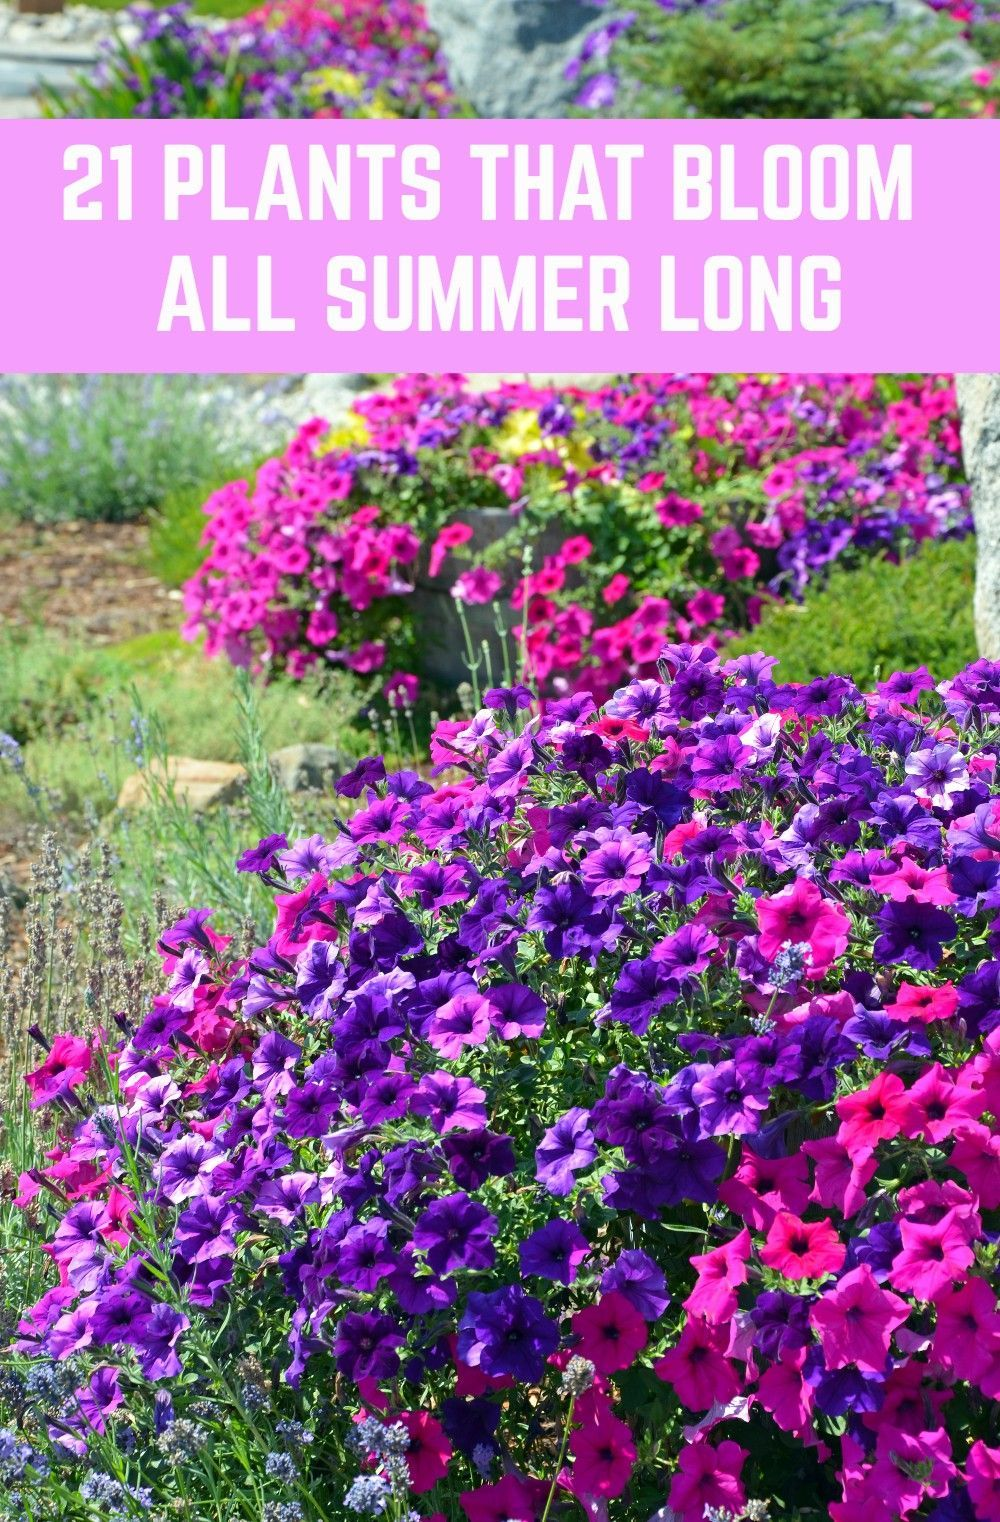 Plant these gorgeous flowers and enjoy their beauty all summer long.